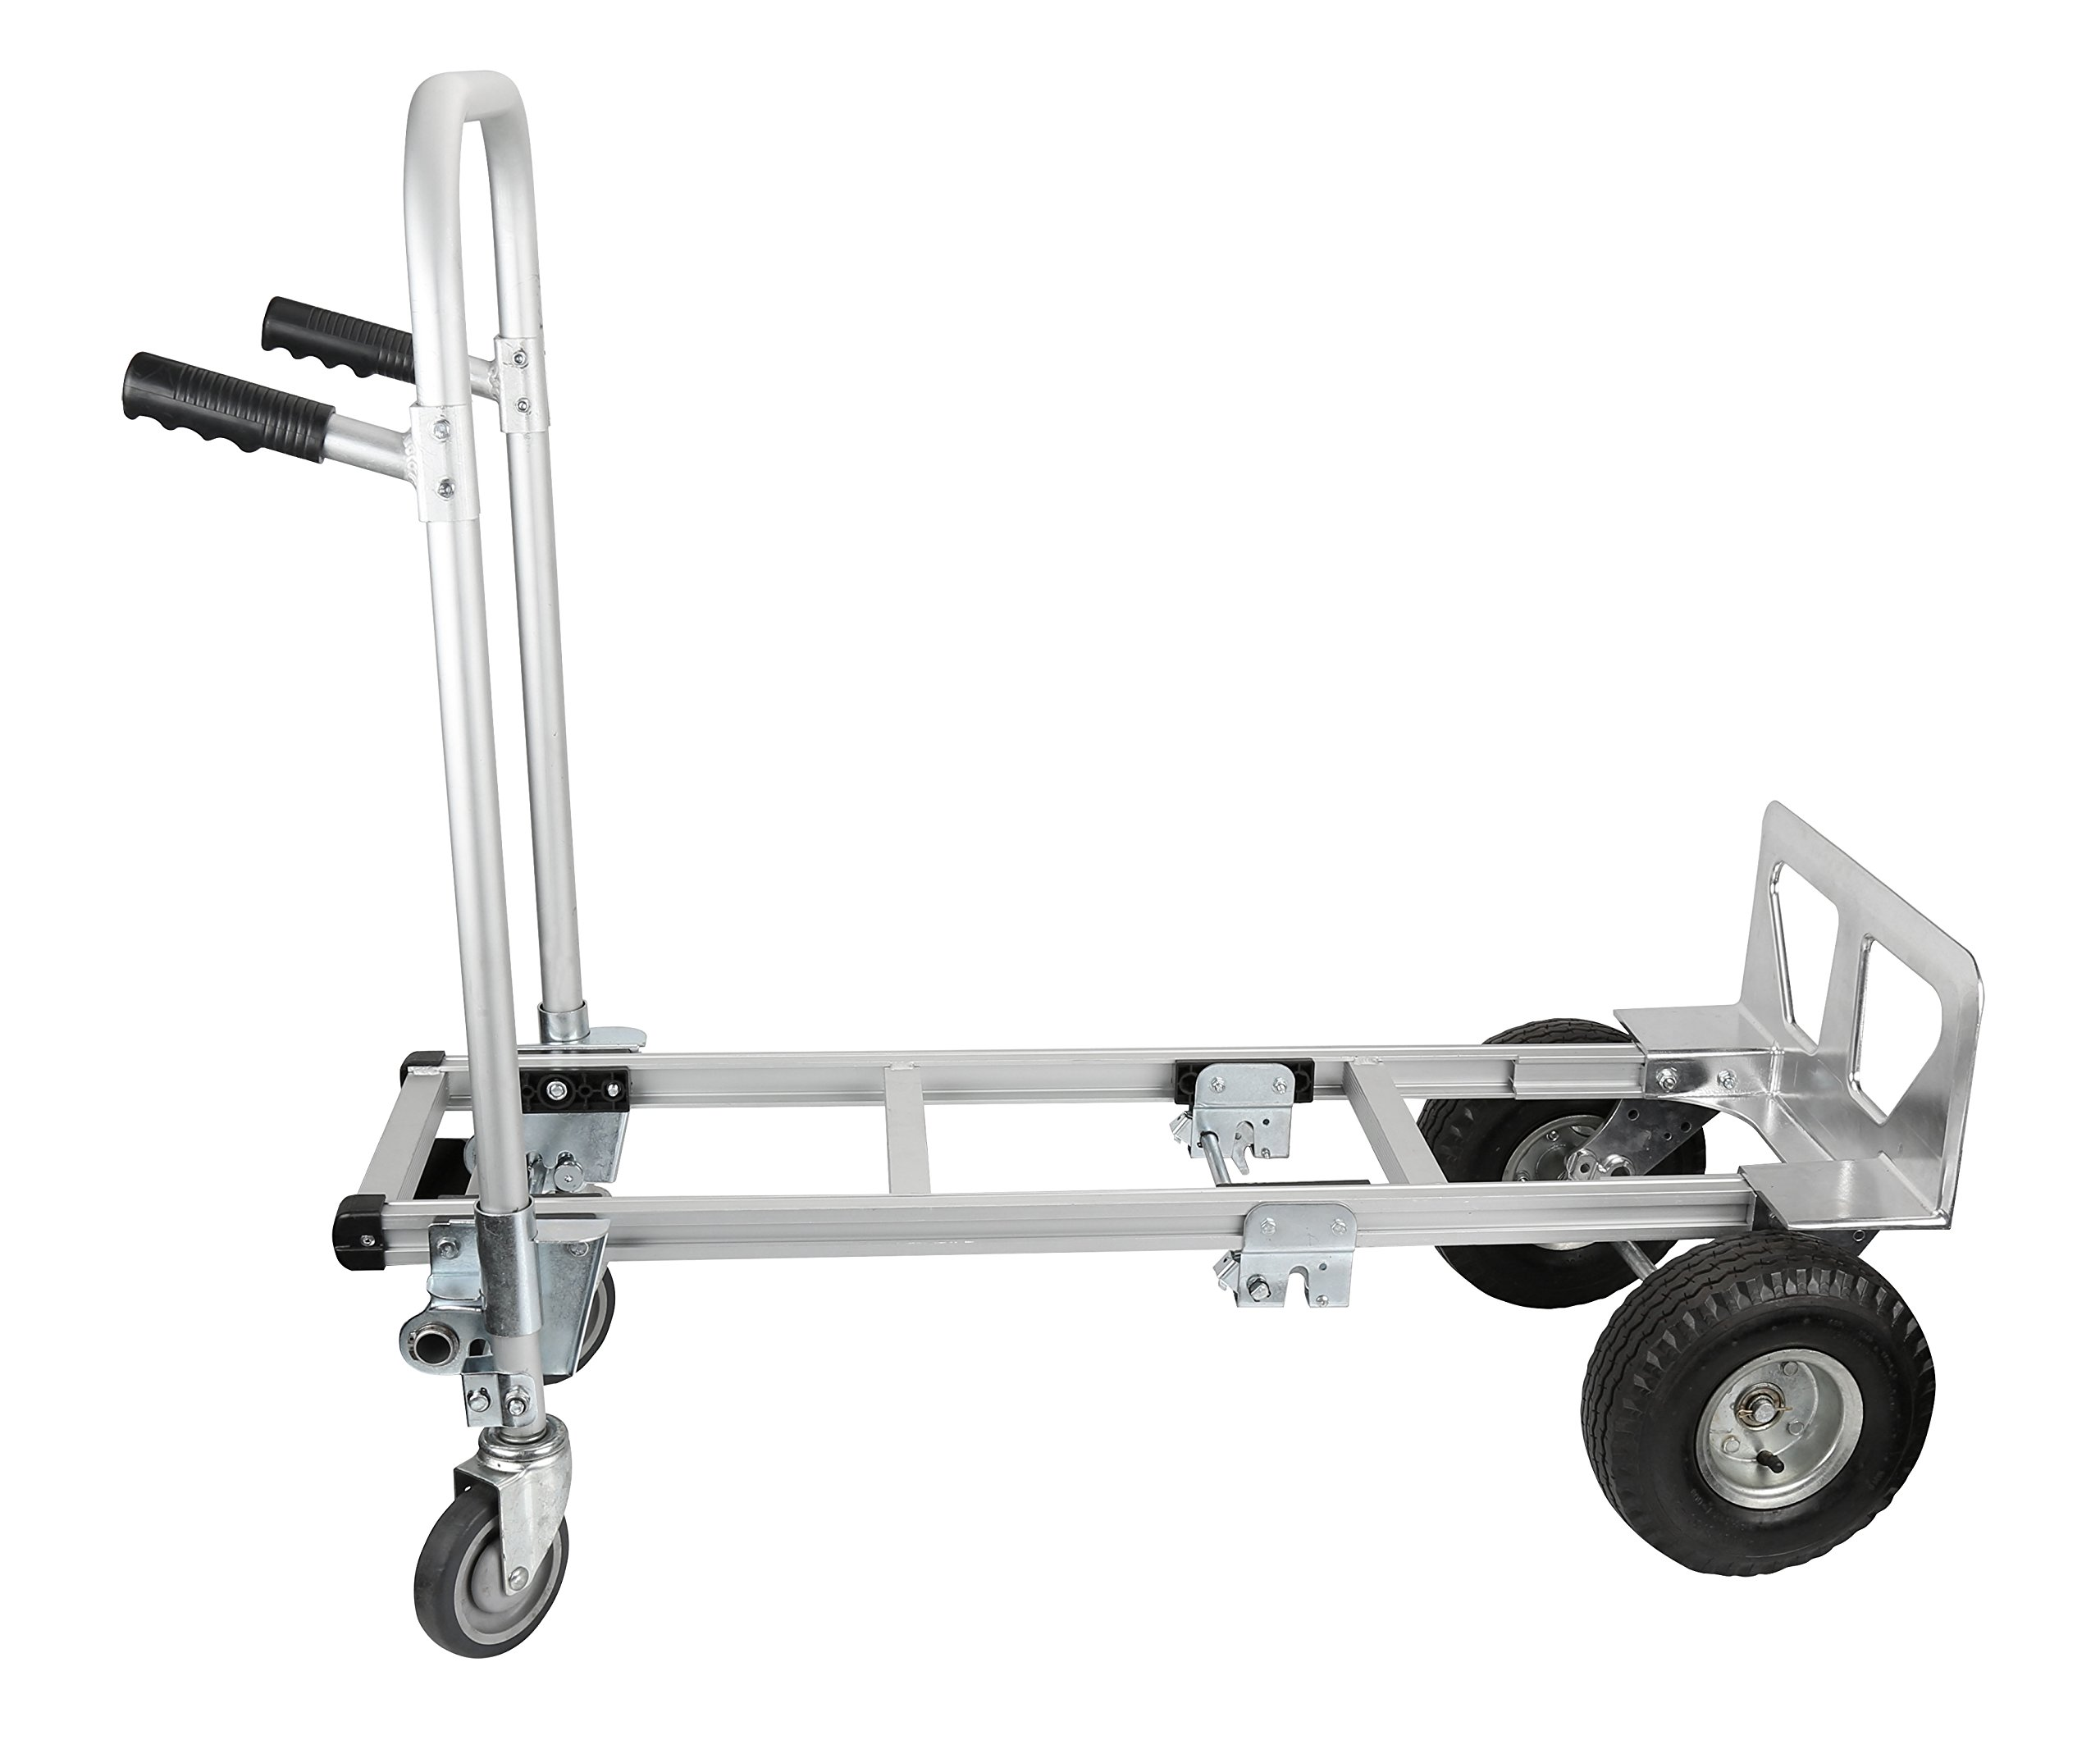 Pack-N-Roll 83-295-917 Convertible Aluminum Hand Truck Dolly